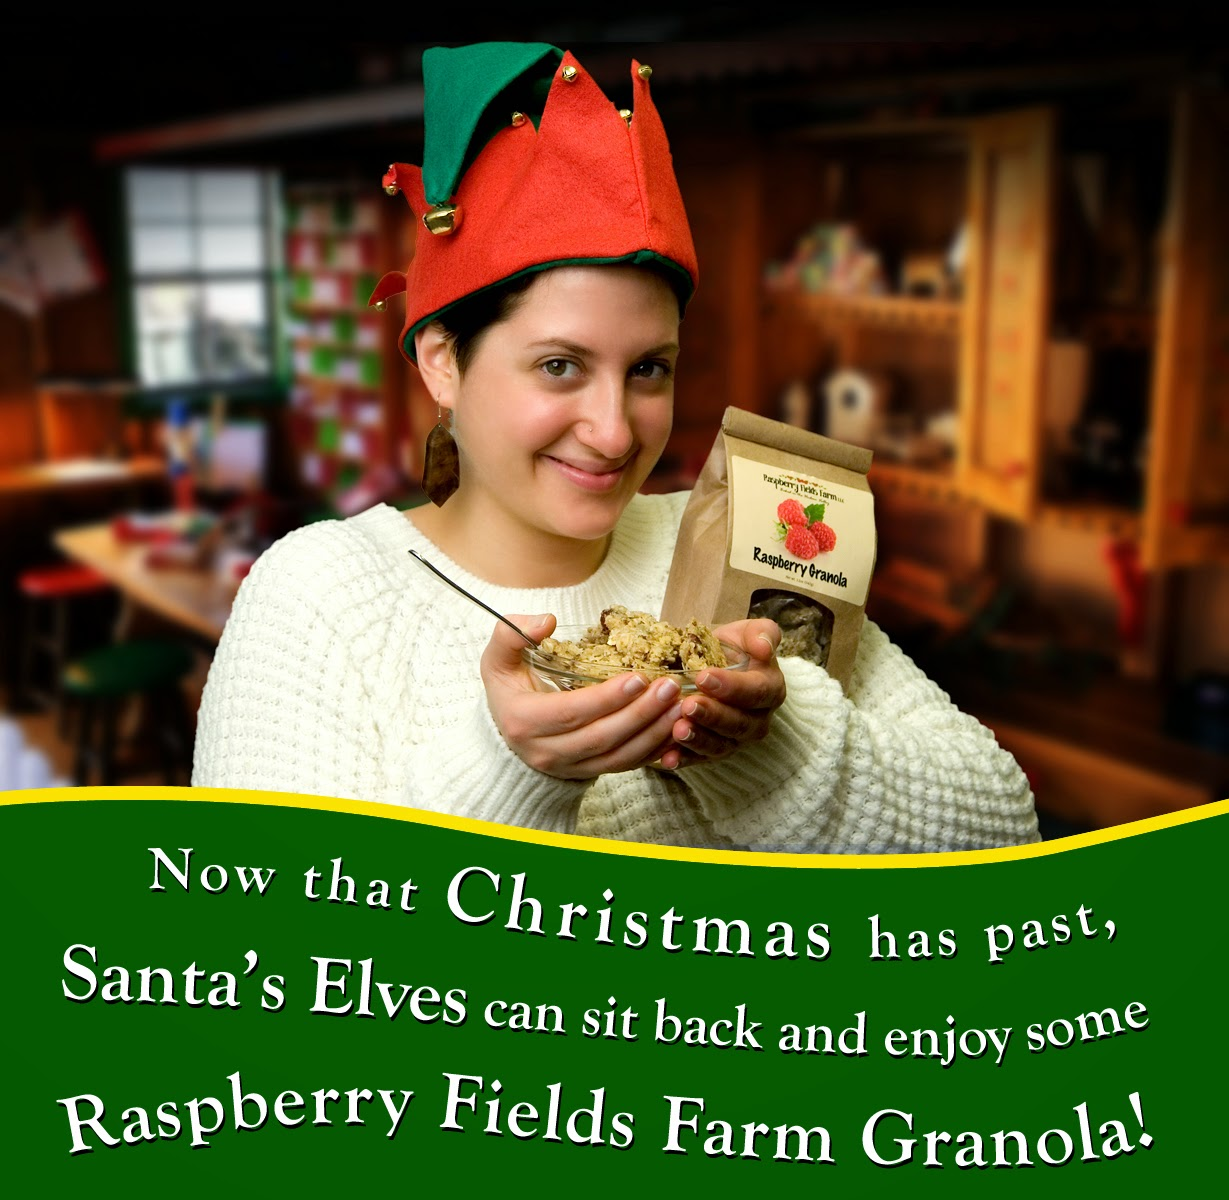 Santa's Elves Enjoy Raspberry Fields Farm Granola